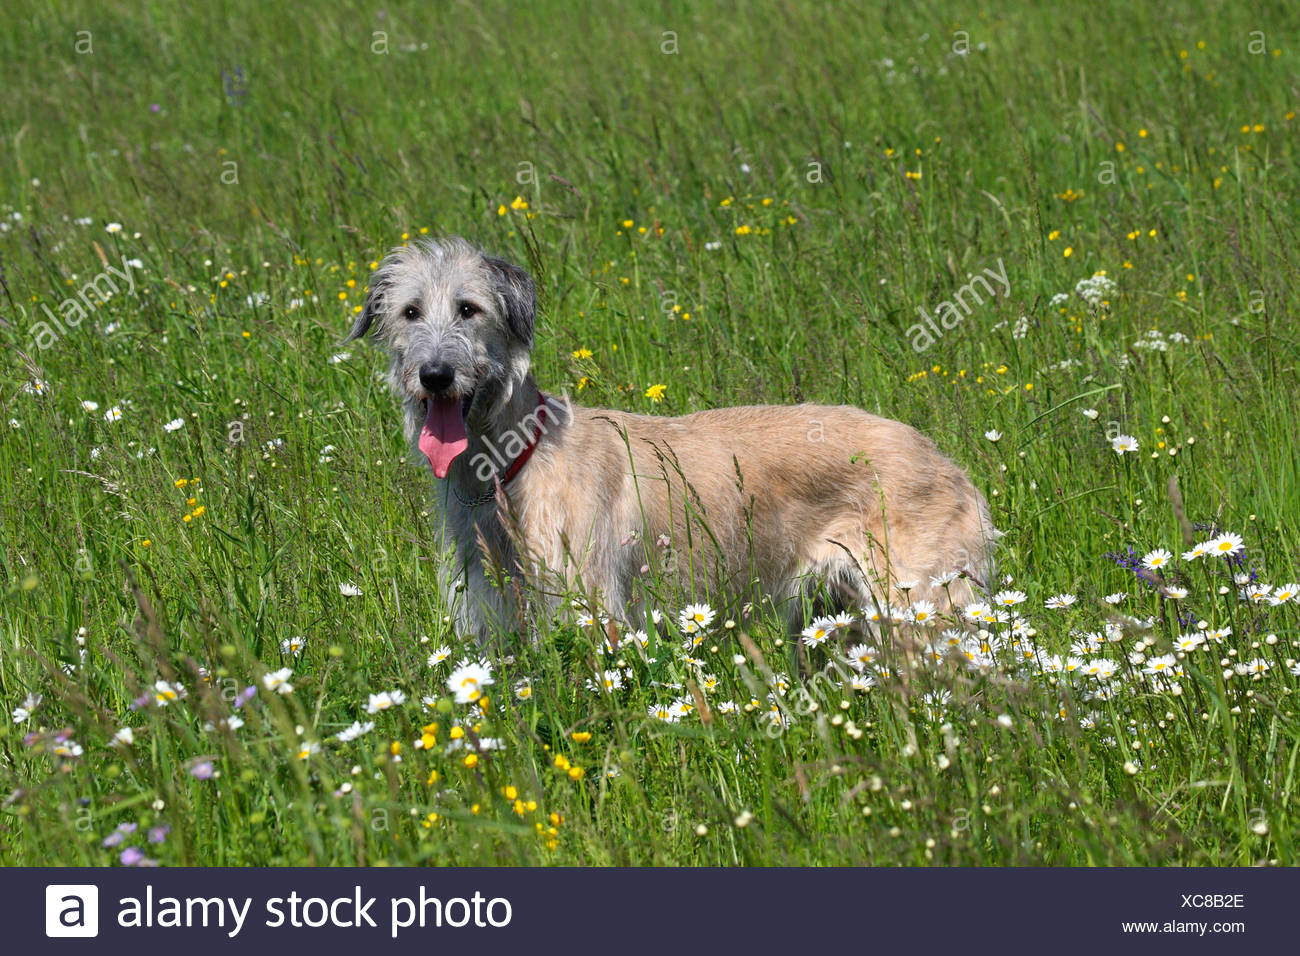 Irish Wolfhound (Canis lupus f. familiaris), lying in a flower meadow, Germany Stock Photo